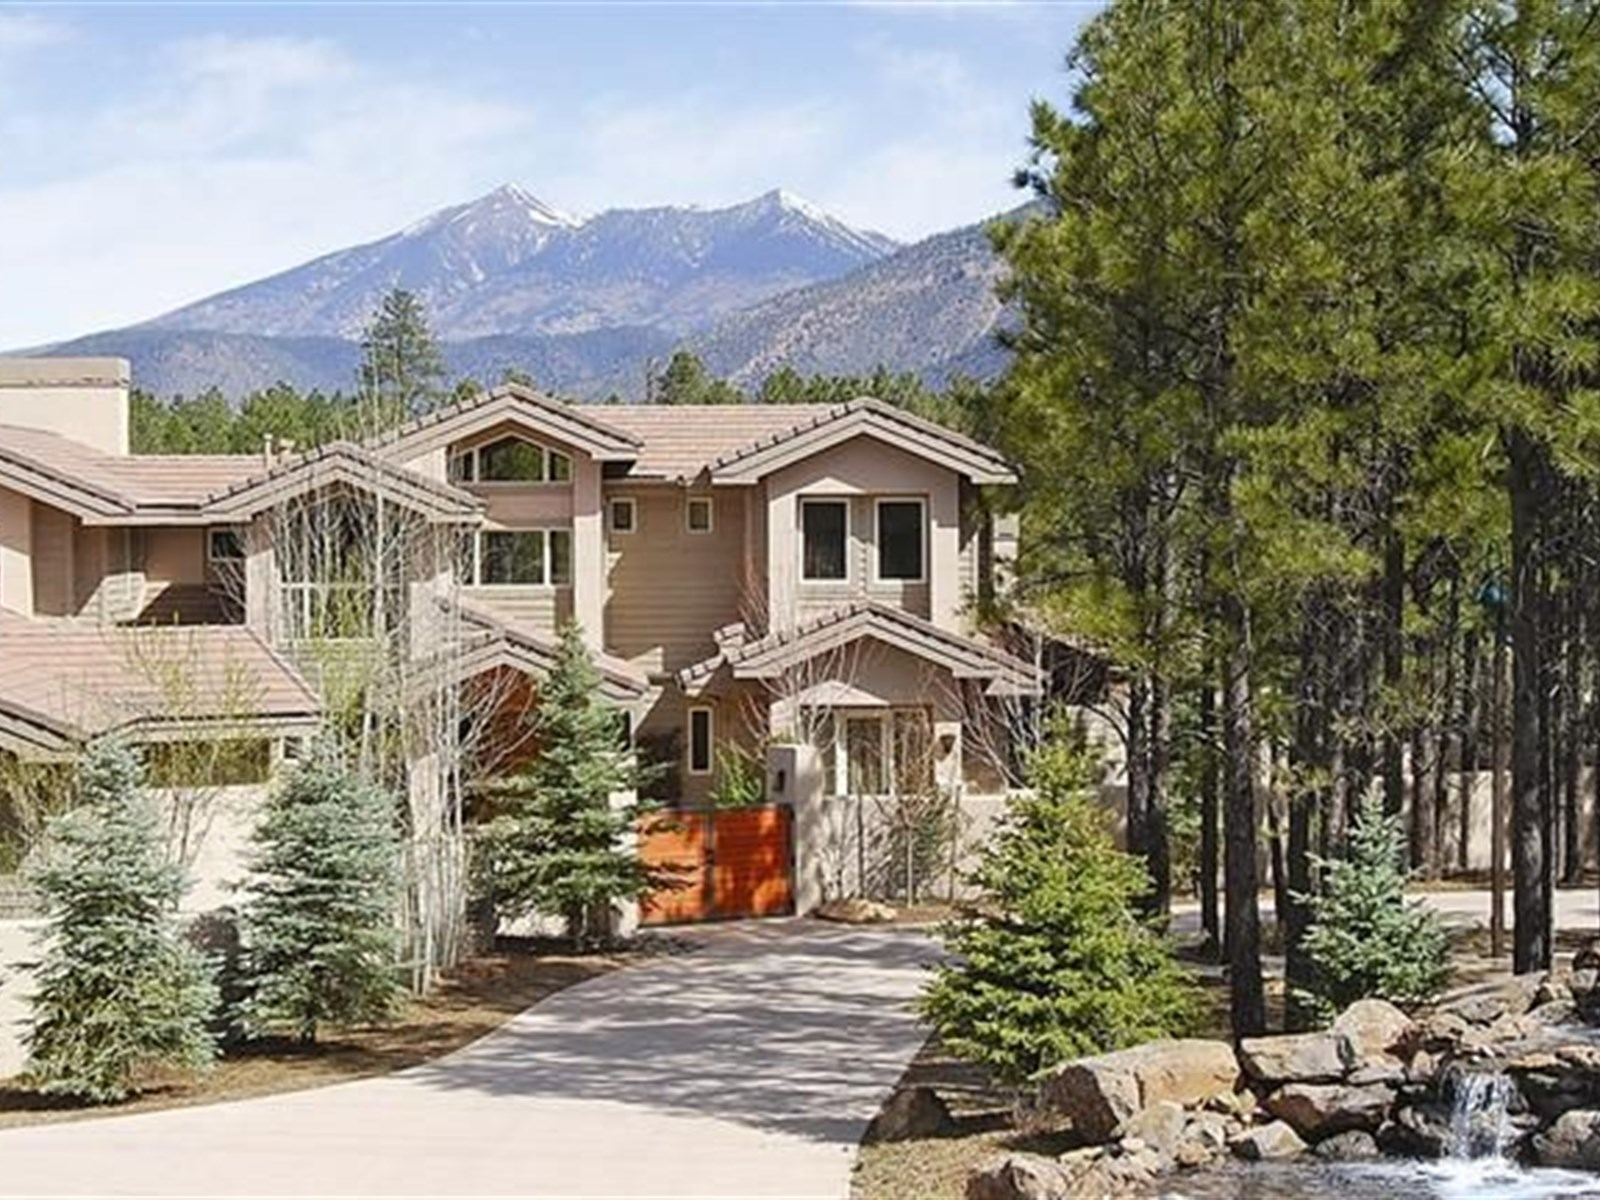 Single Family Home for Sale at Inspiring Mountain Views 351 N Sky View ST Flagstaff, Arizona 86004 United States